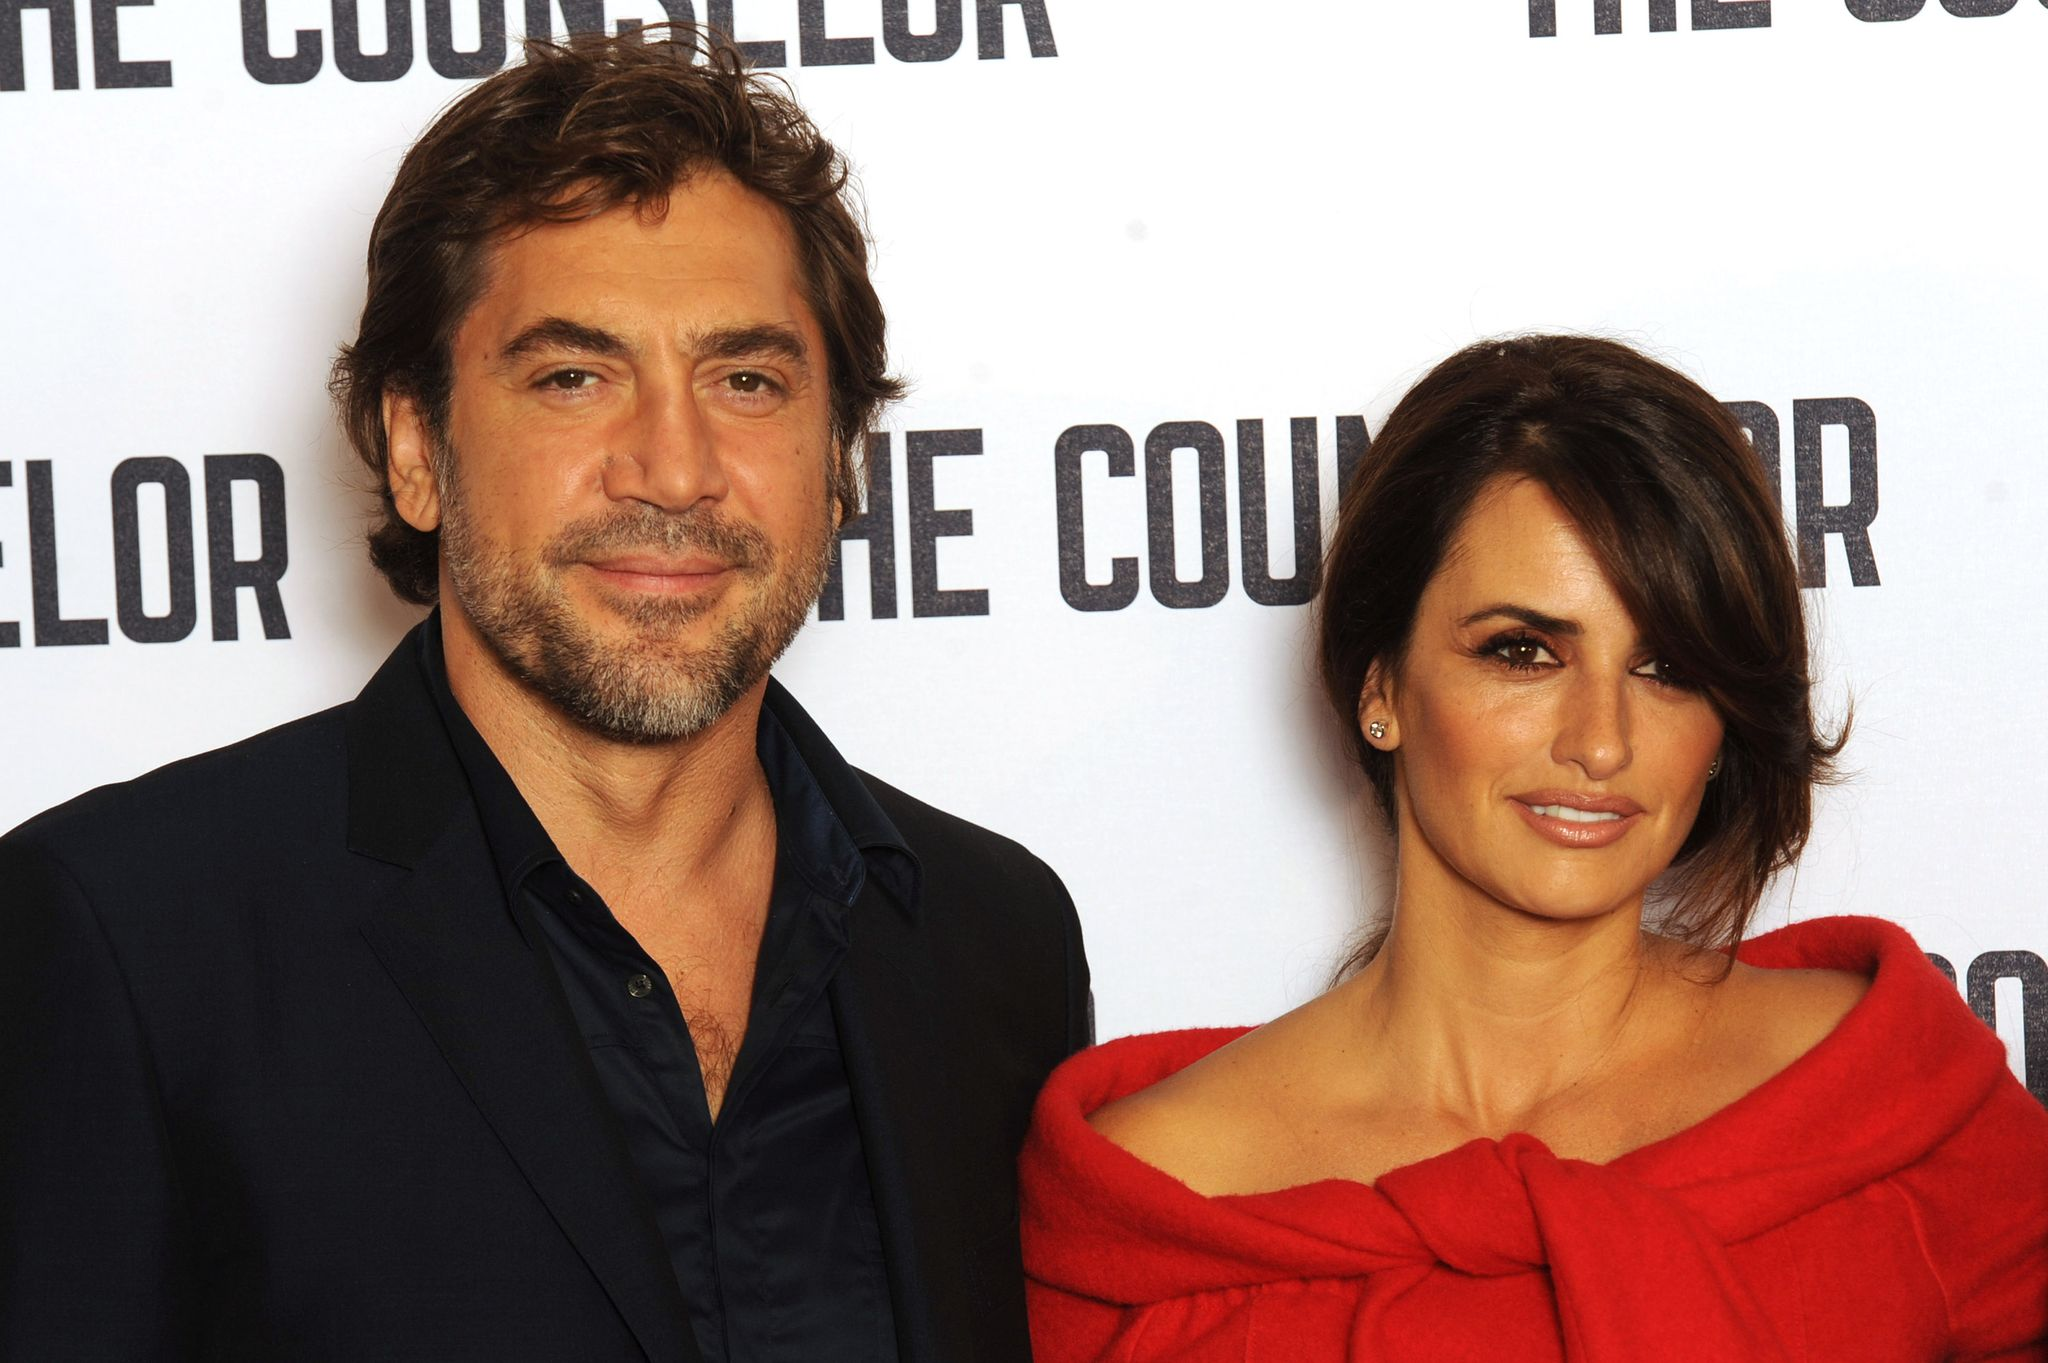 Javier Bardem and Penelope Cruz at a photocall for 'The Counselor' in 2013 in London, England